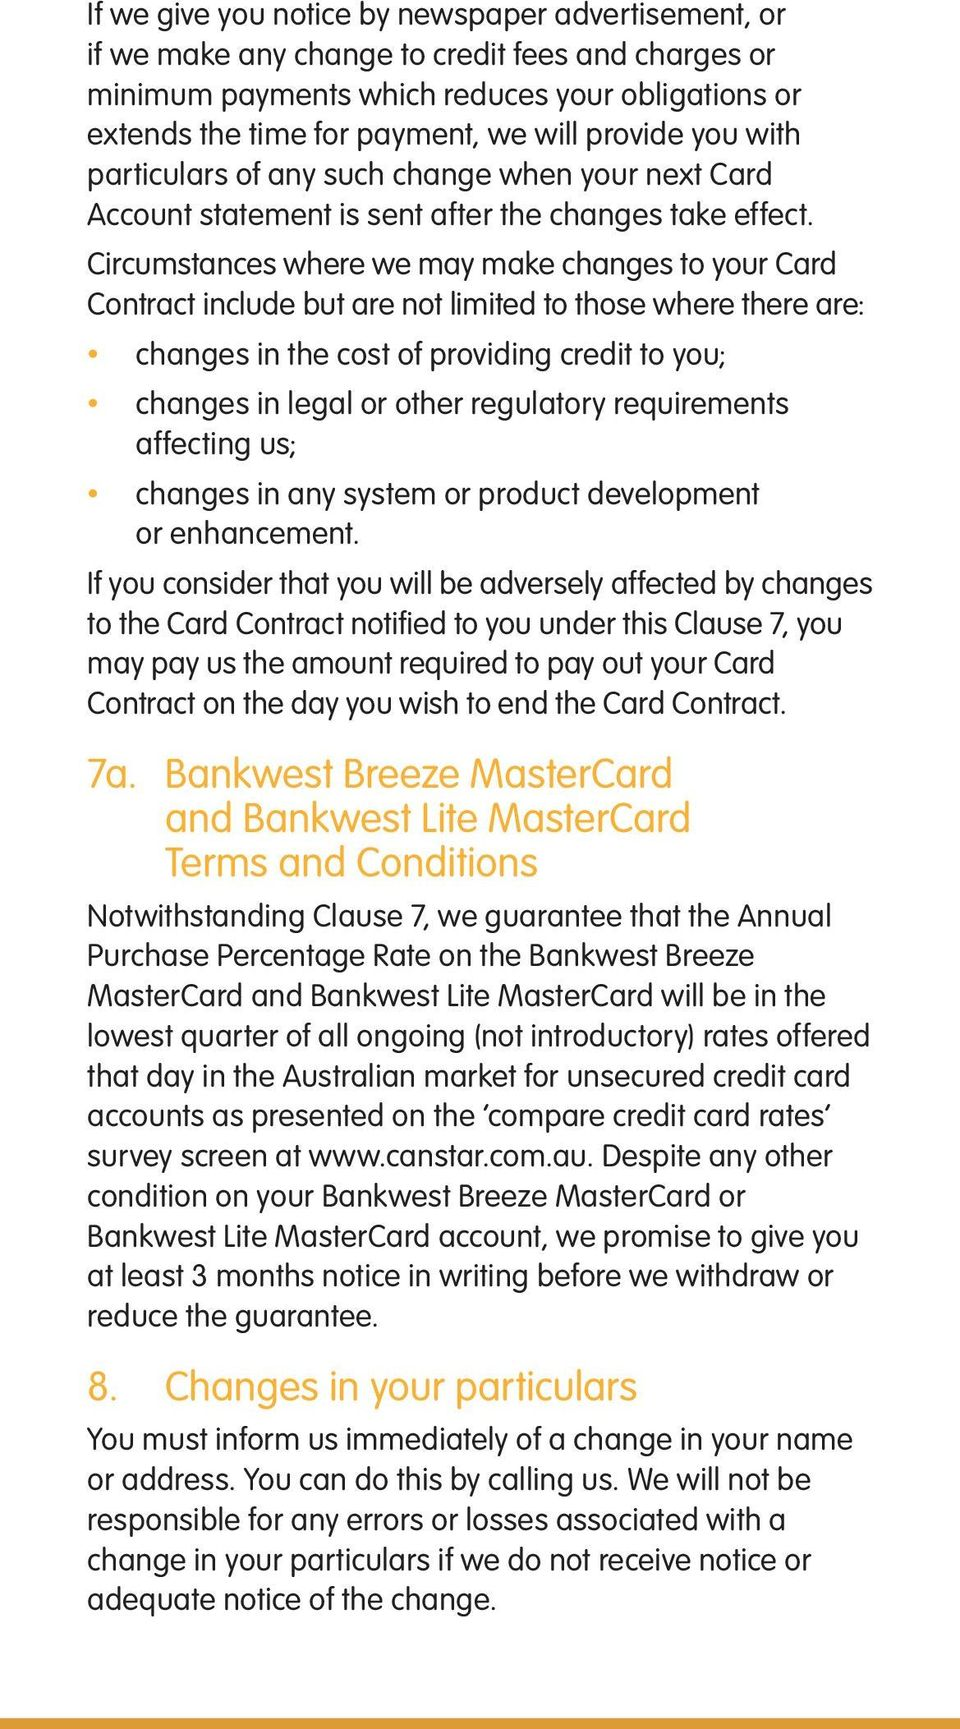 Circumstances where we may make changes to your Card Contract include but are not limited to those where there are: changes in the cost of providing credit to you; changes in legal or other